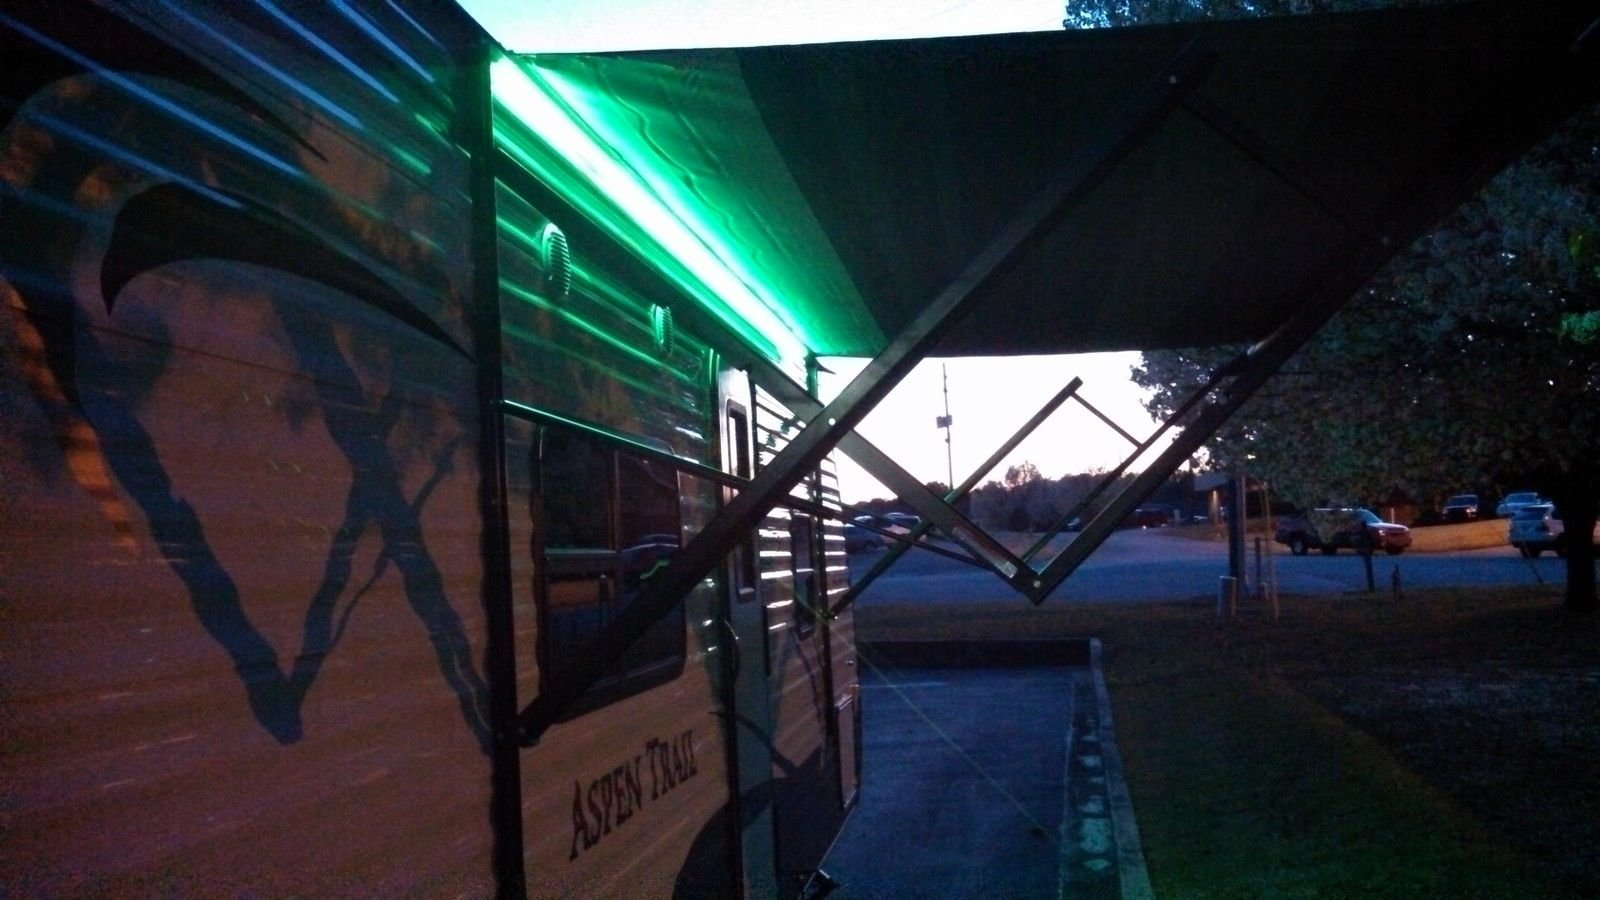 RV Recreational Vehicle Awning LED Light Strip RGB Multi Colored with 44 Key IR Remote and Power Source (4 Foot Length) by RC Lighthouse (Image #4)